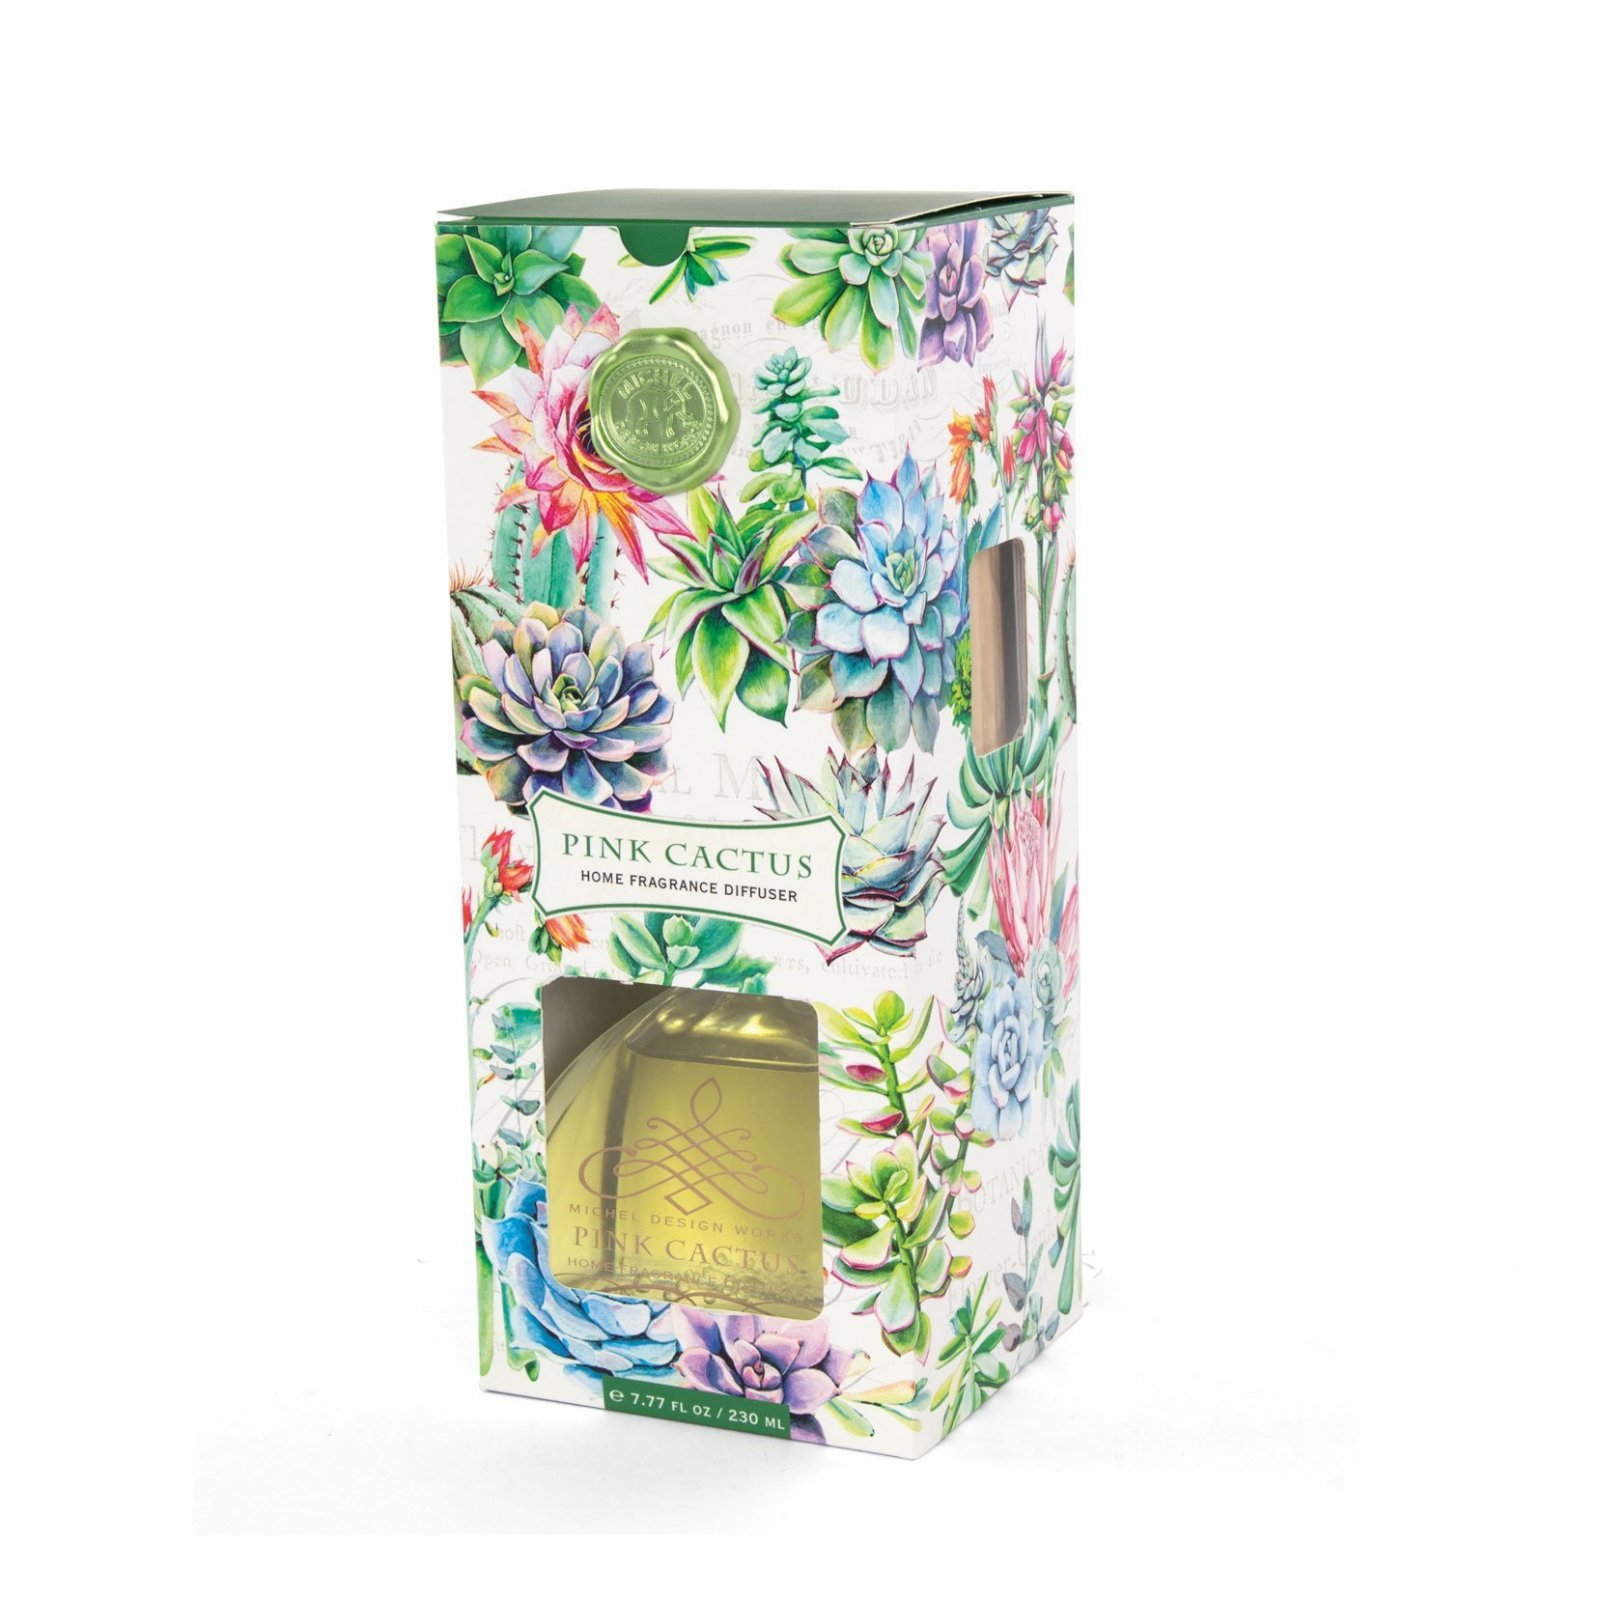 Pink Cactus Home Fragrance Diffuser